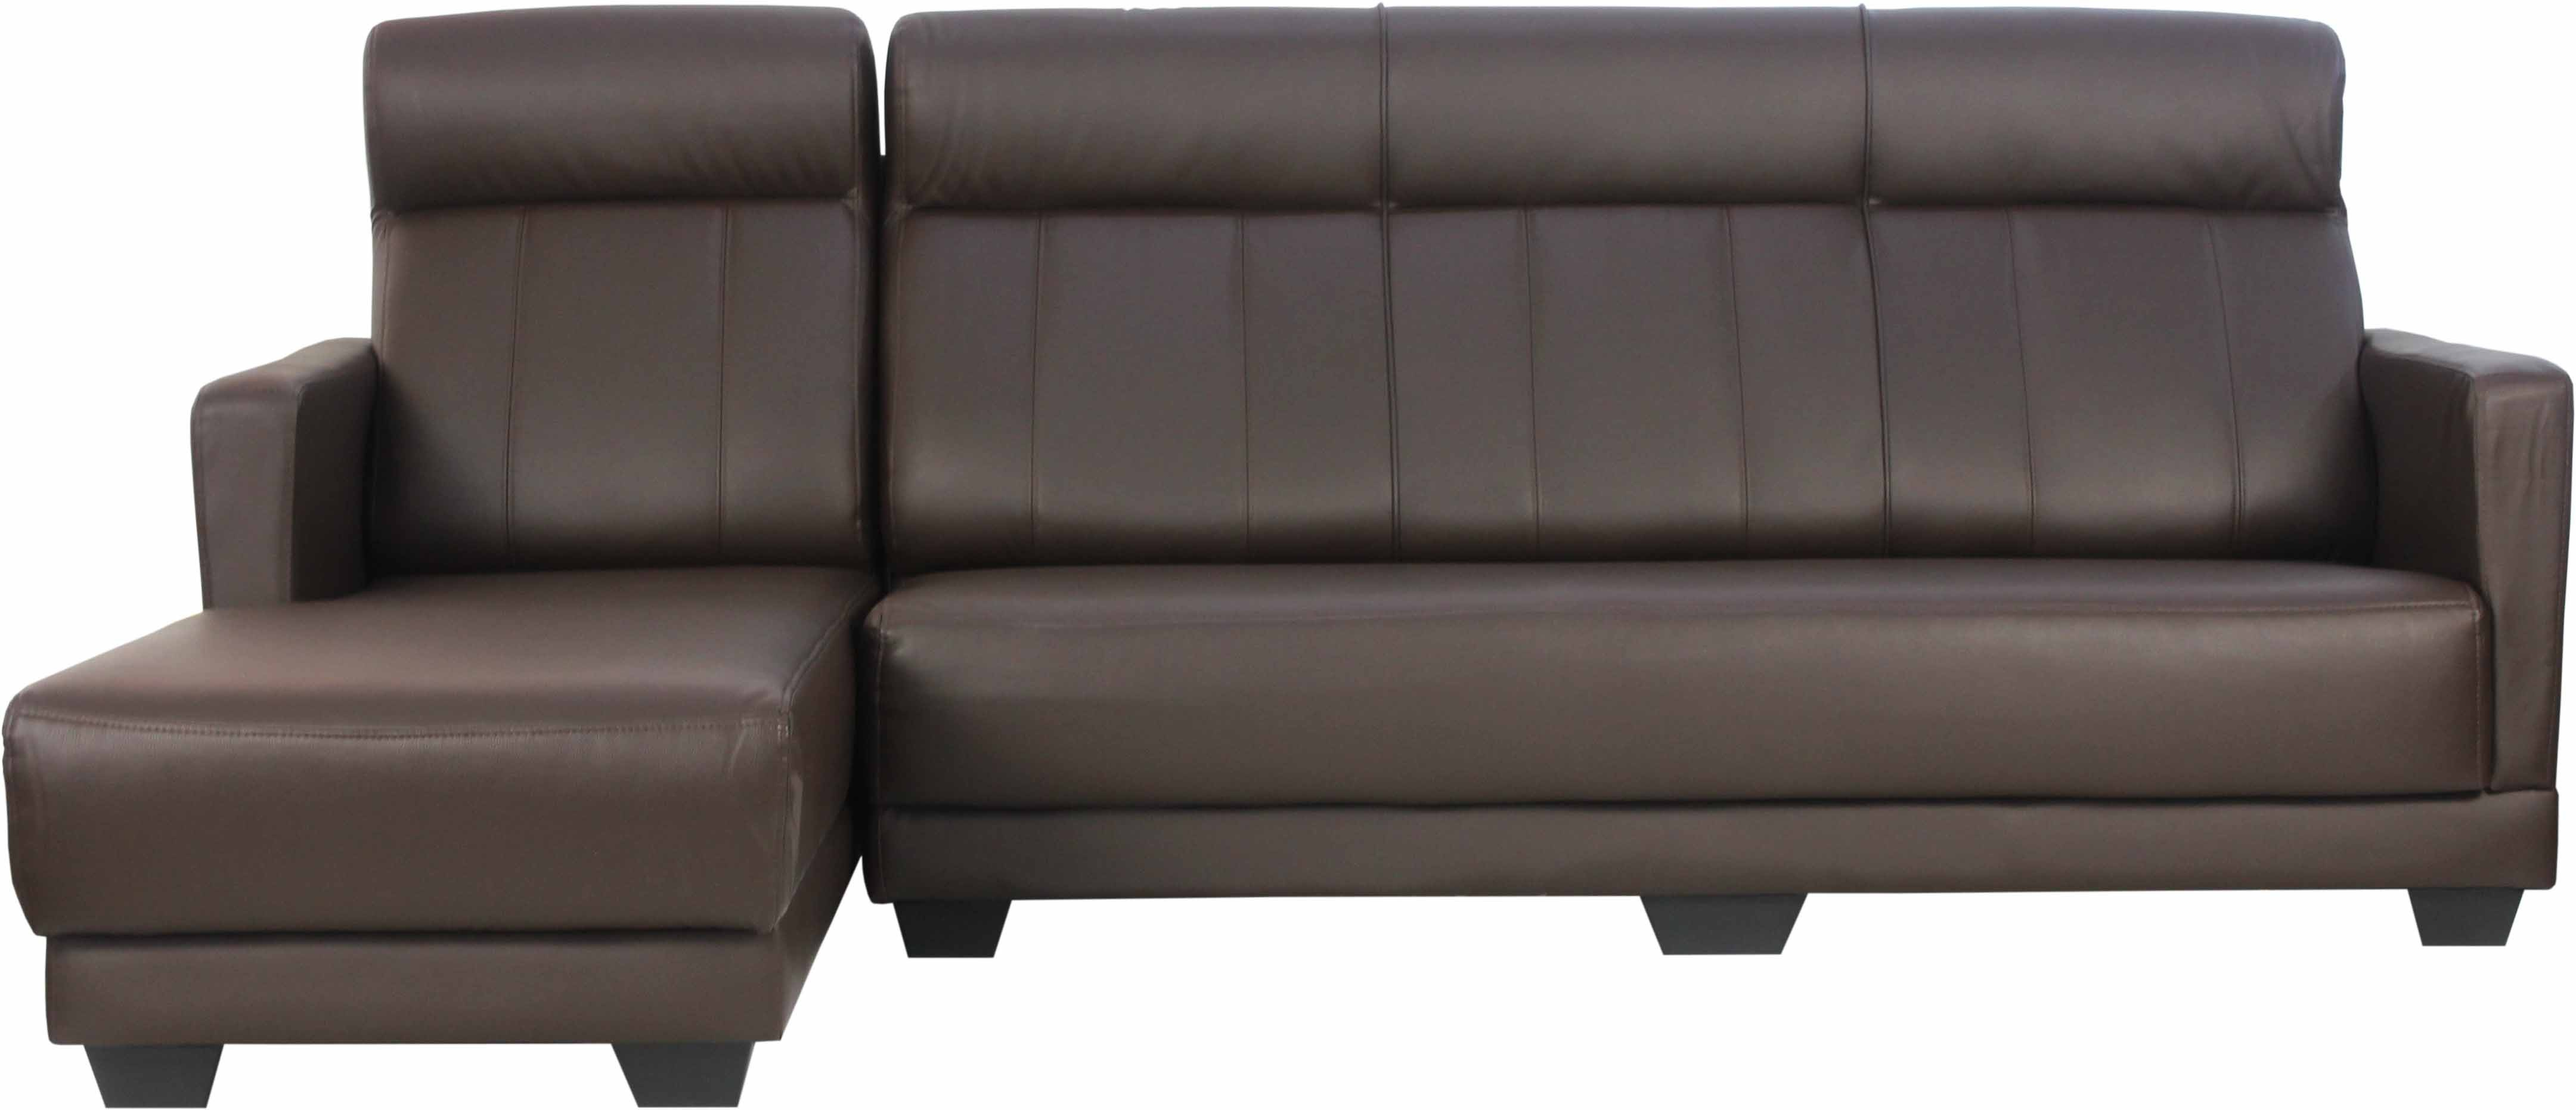 9 Seater Sofa Set Designs With Price Stacy 4 Seater L Shaped Sofa Set Furniture And Home Décor